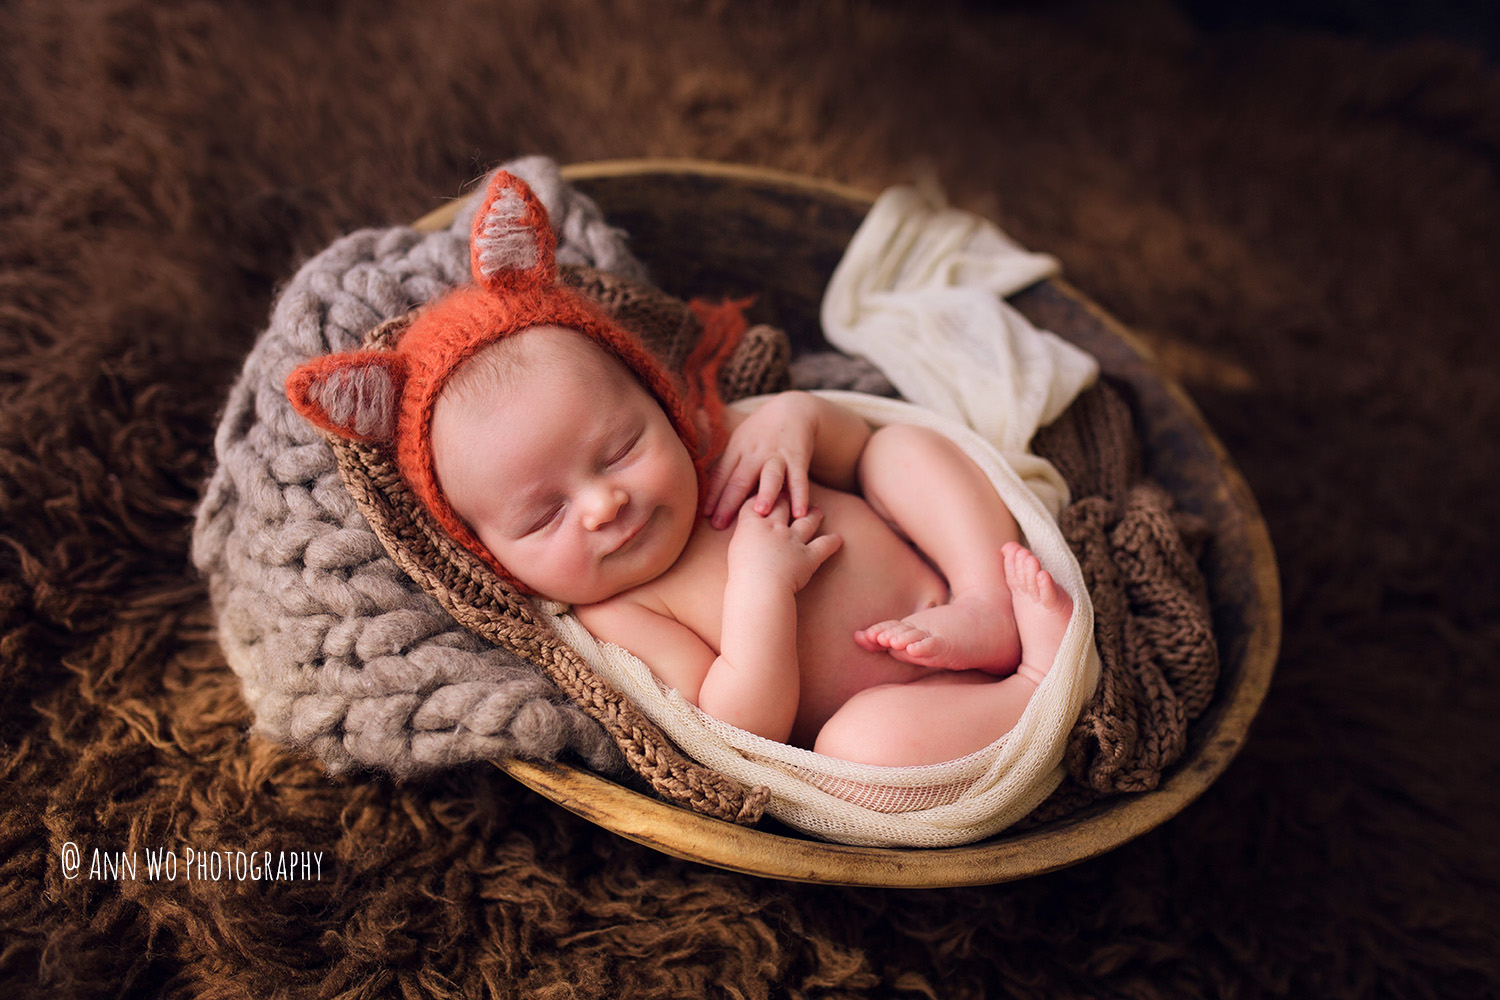 newborn photographer in London Ann Wo baby boy sleeping wrapped in a wooden bowl wearing knitted fox hat